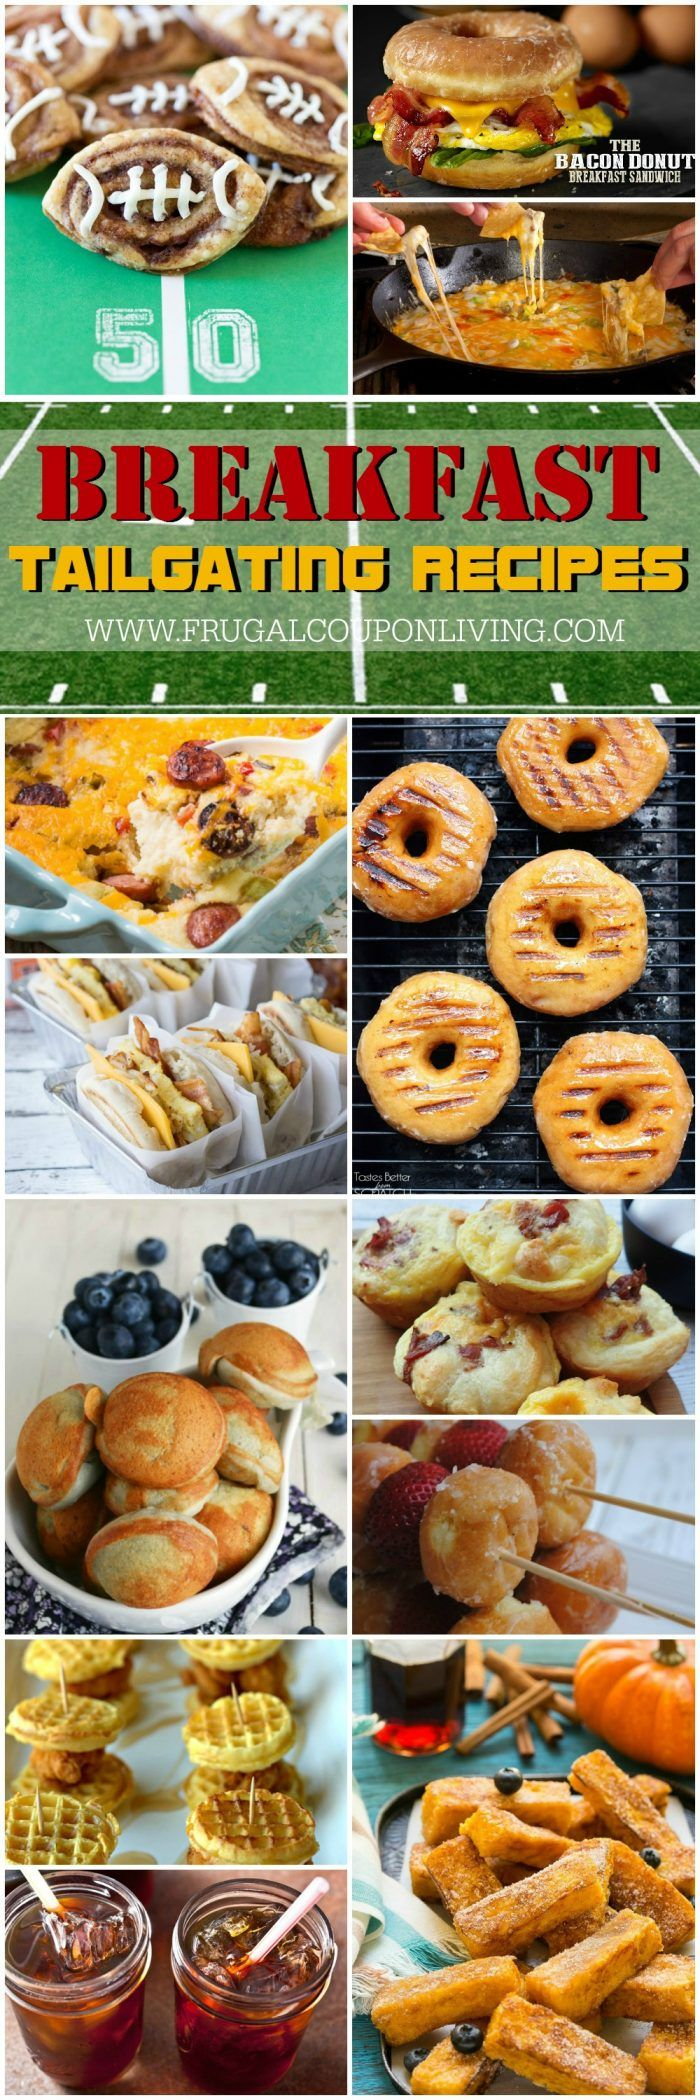 Have an early football game? Take a look at these Early Game Tailgate Recipes for Breakfast on Frugal Coupon Living. Recipes to serve a crowd.